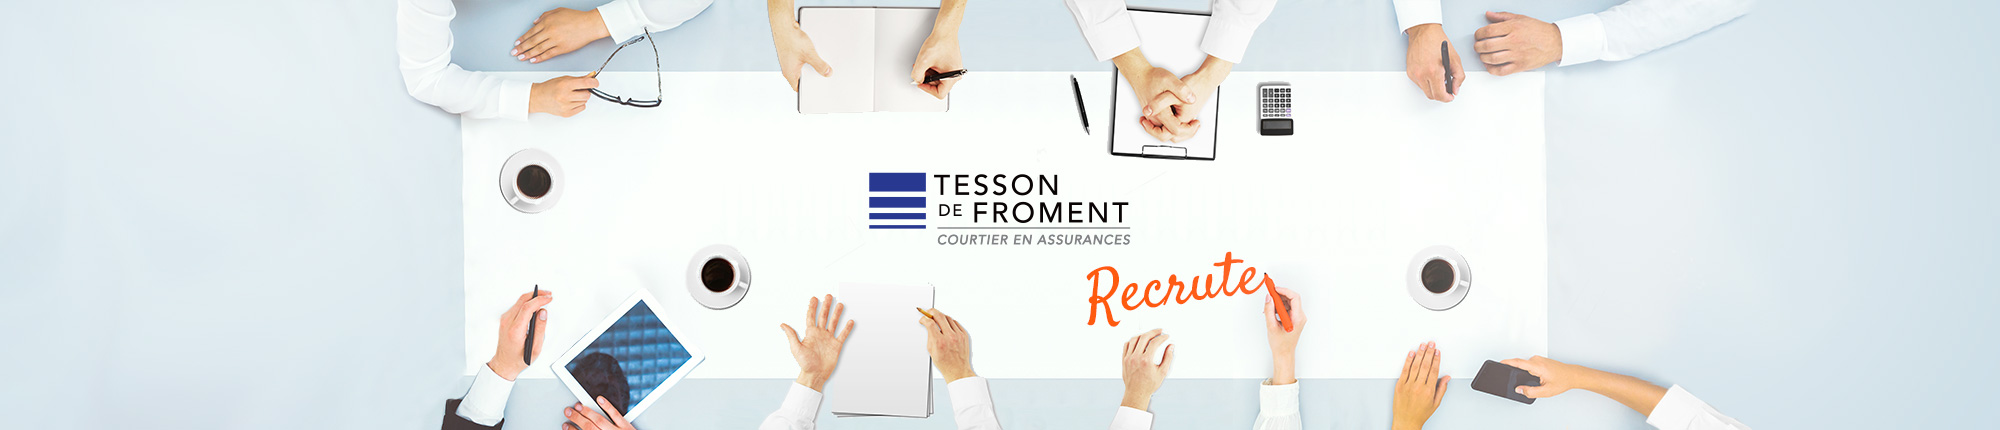 tesson-recrutement